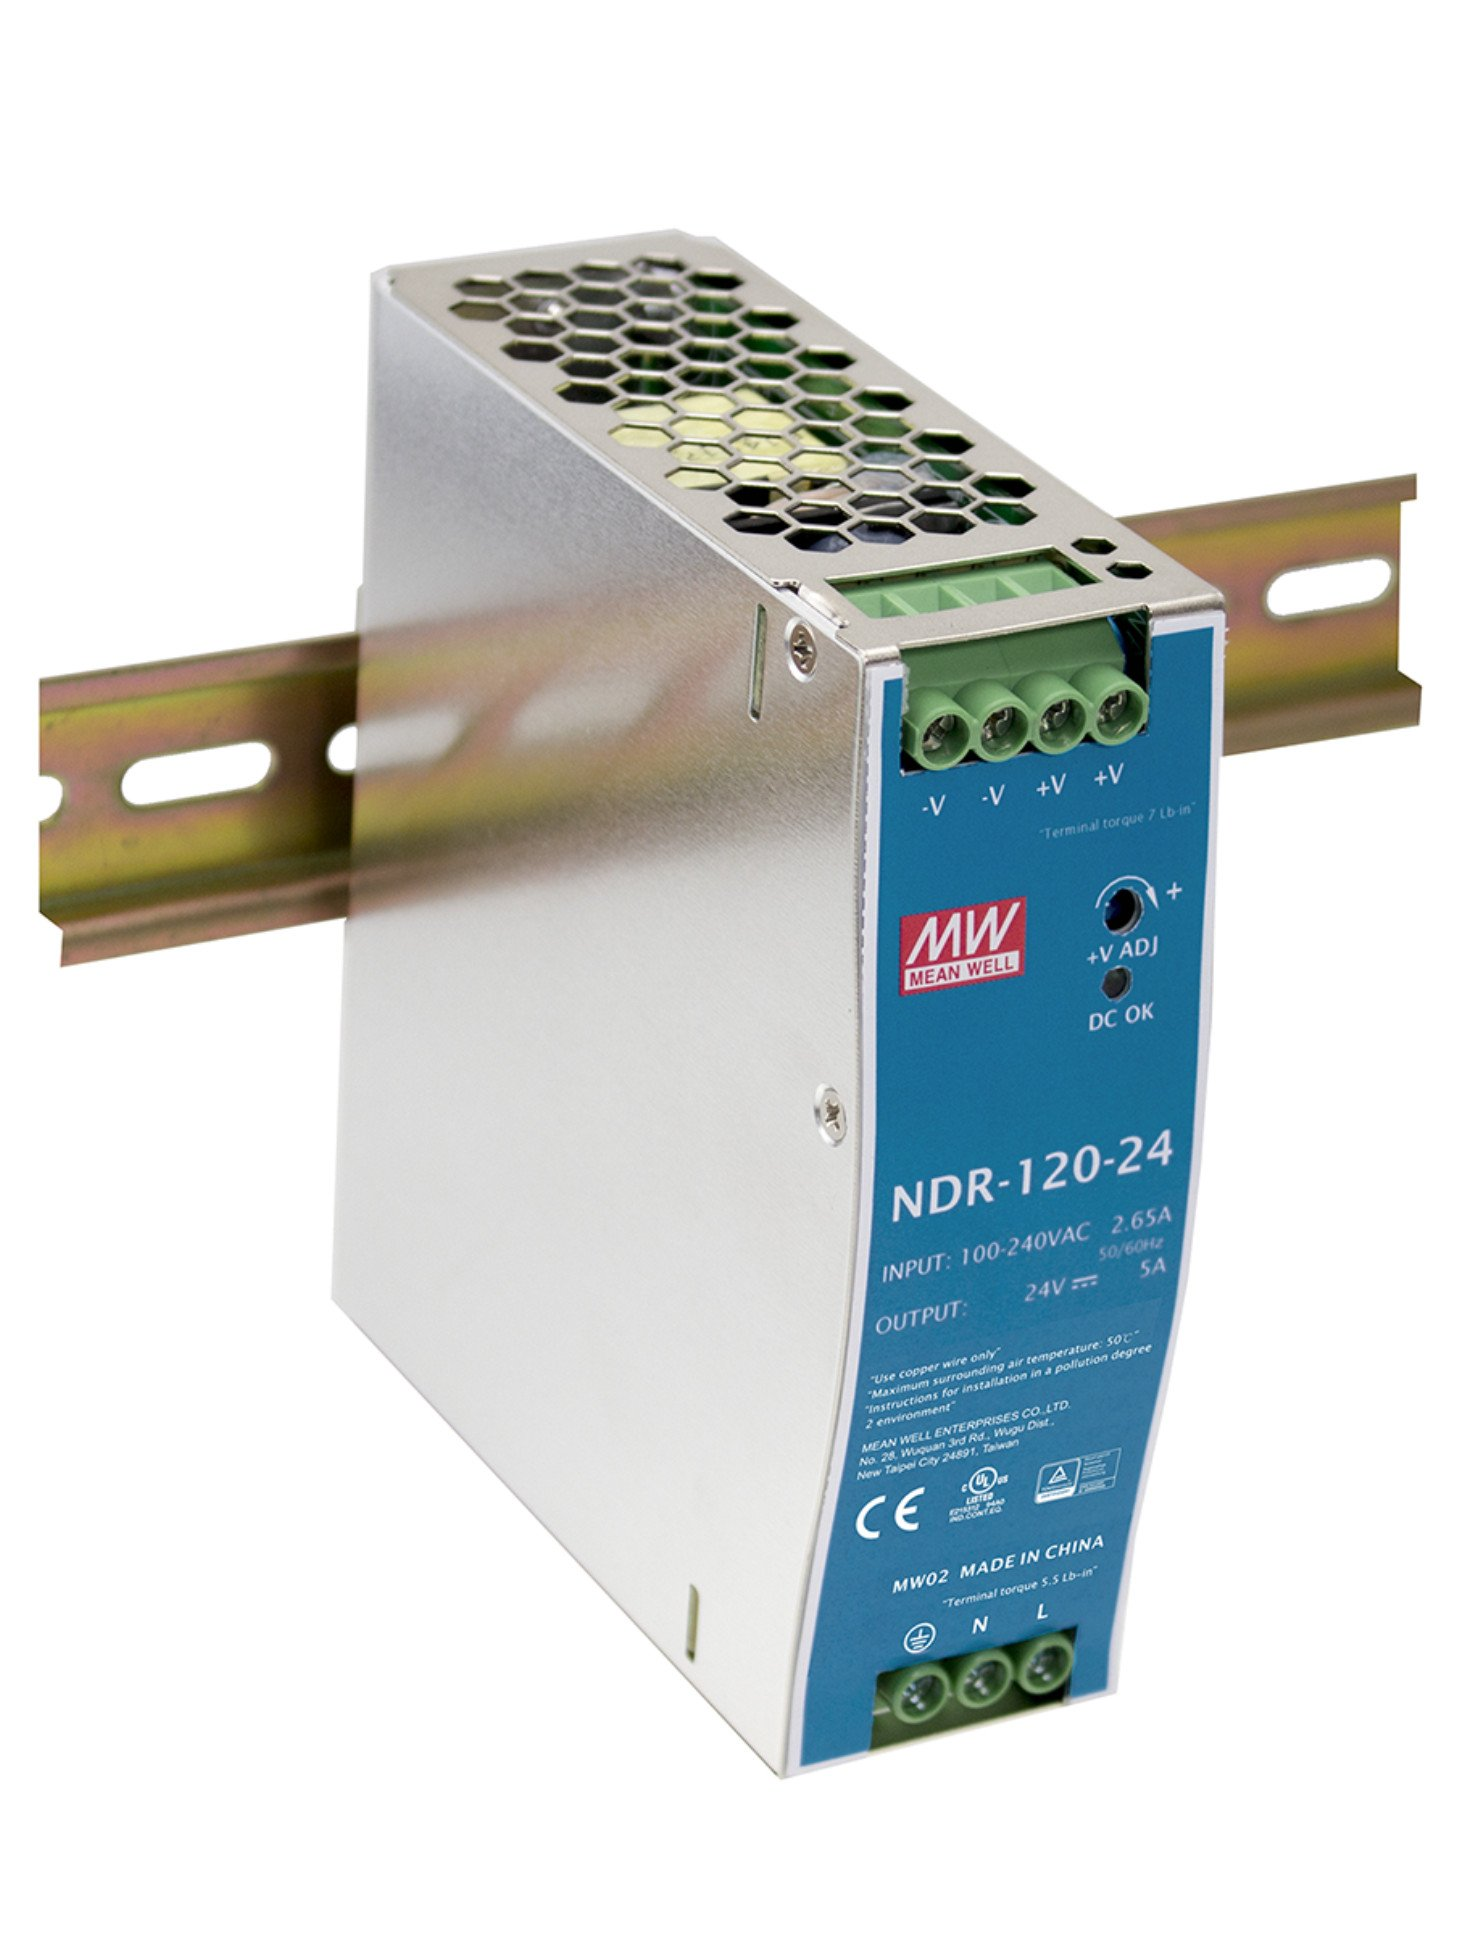 MEAN WELL original NDR-120-24 24V 5A meanwell NDR-120 24V 120W Single Output Industrial DIN Rail Power Supply